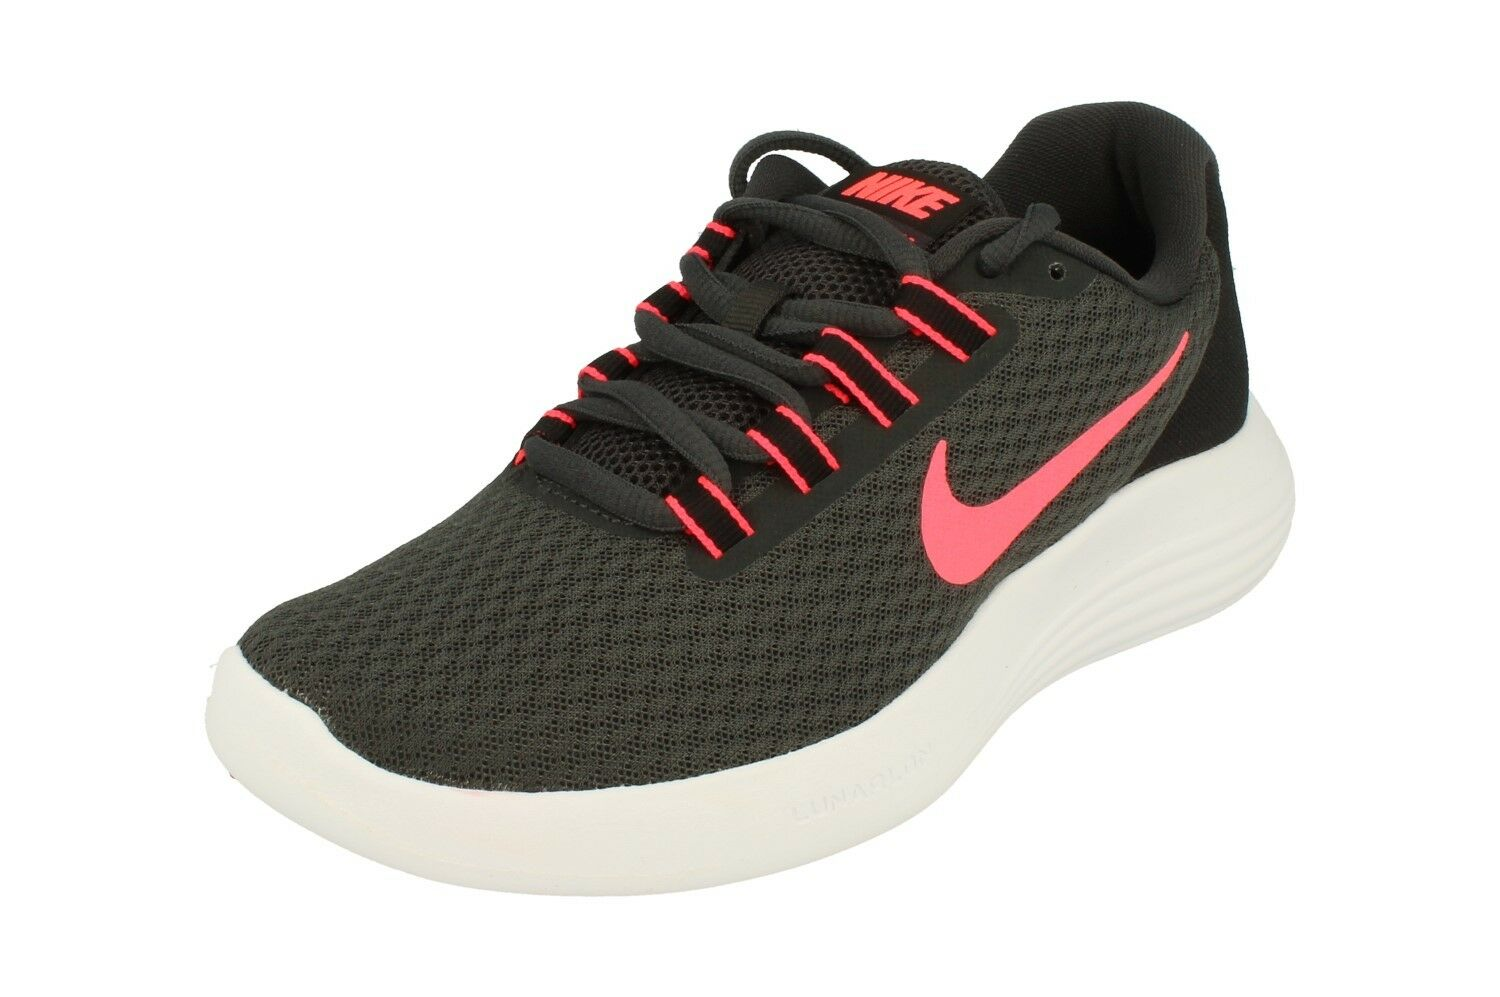 Nike Womens Luanrconverge Running Trainers 852469 Sneakers shoes 002